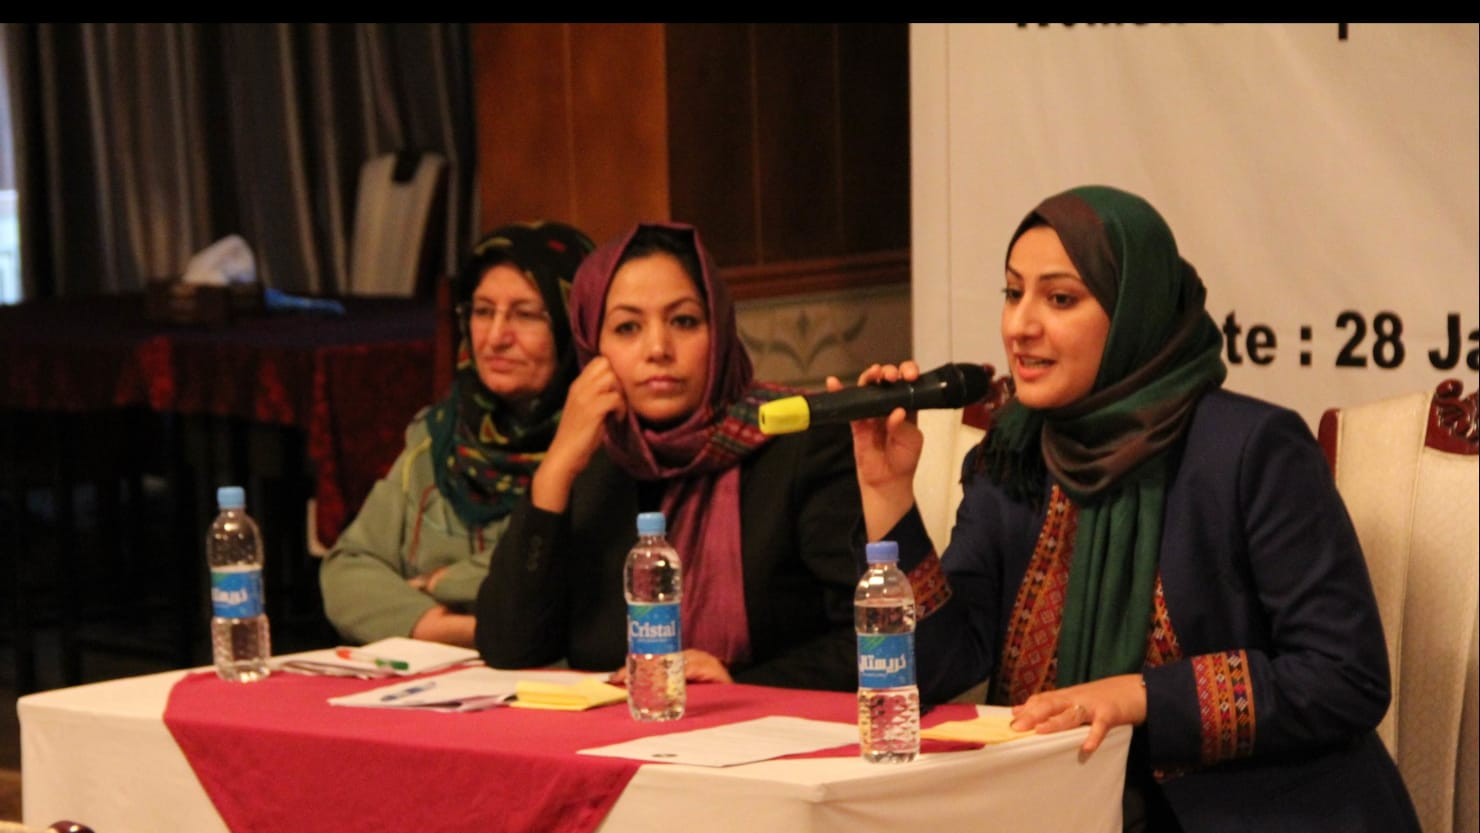 Amid Unrest, Afghan Women Push For Role in Peace Process